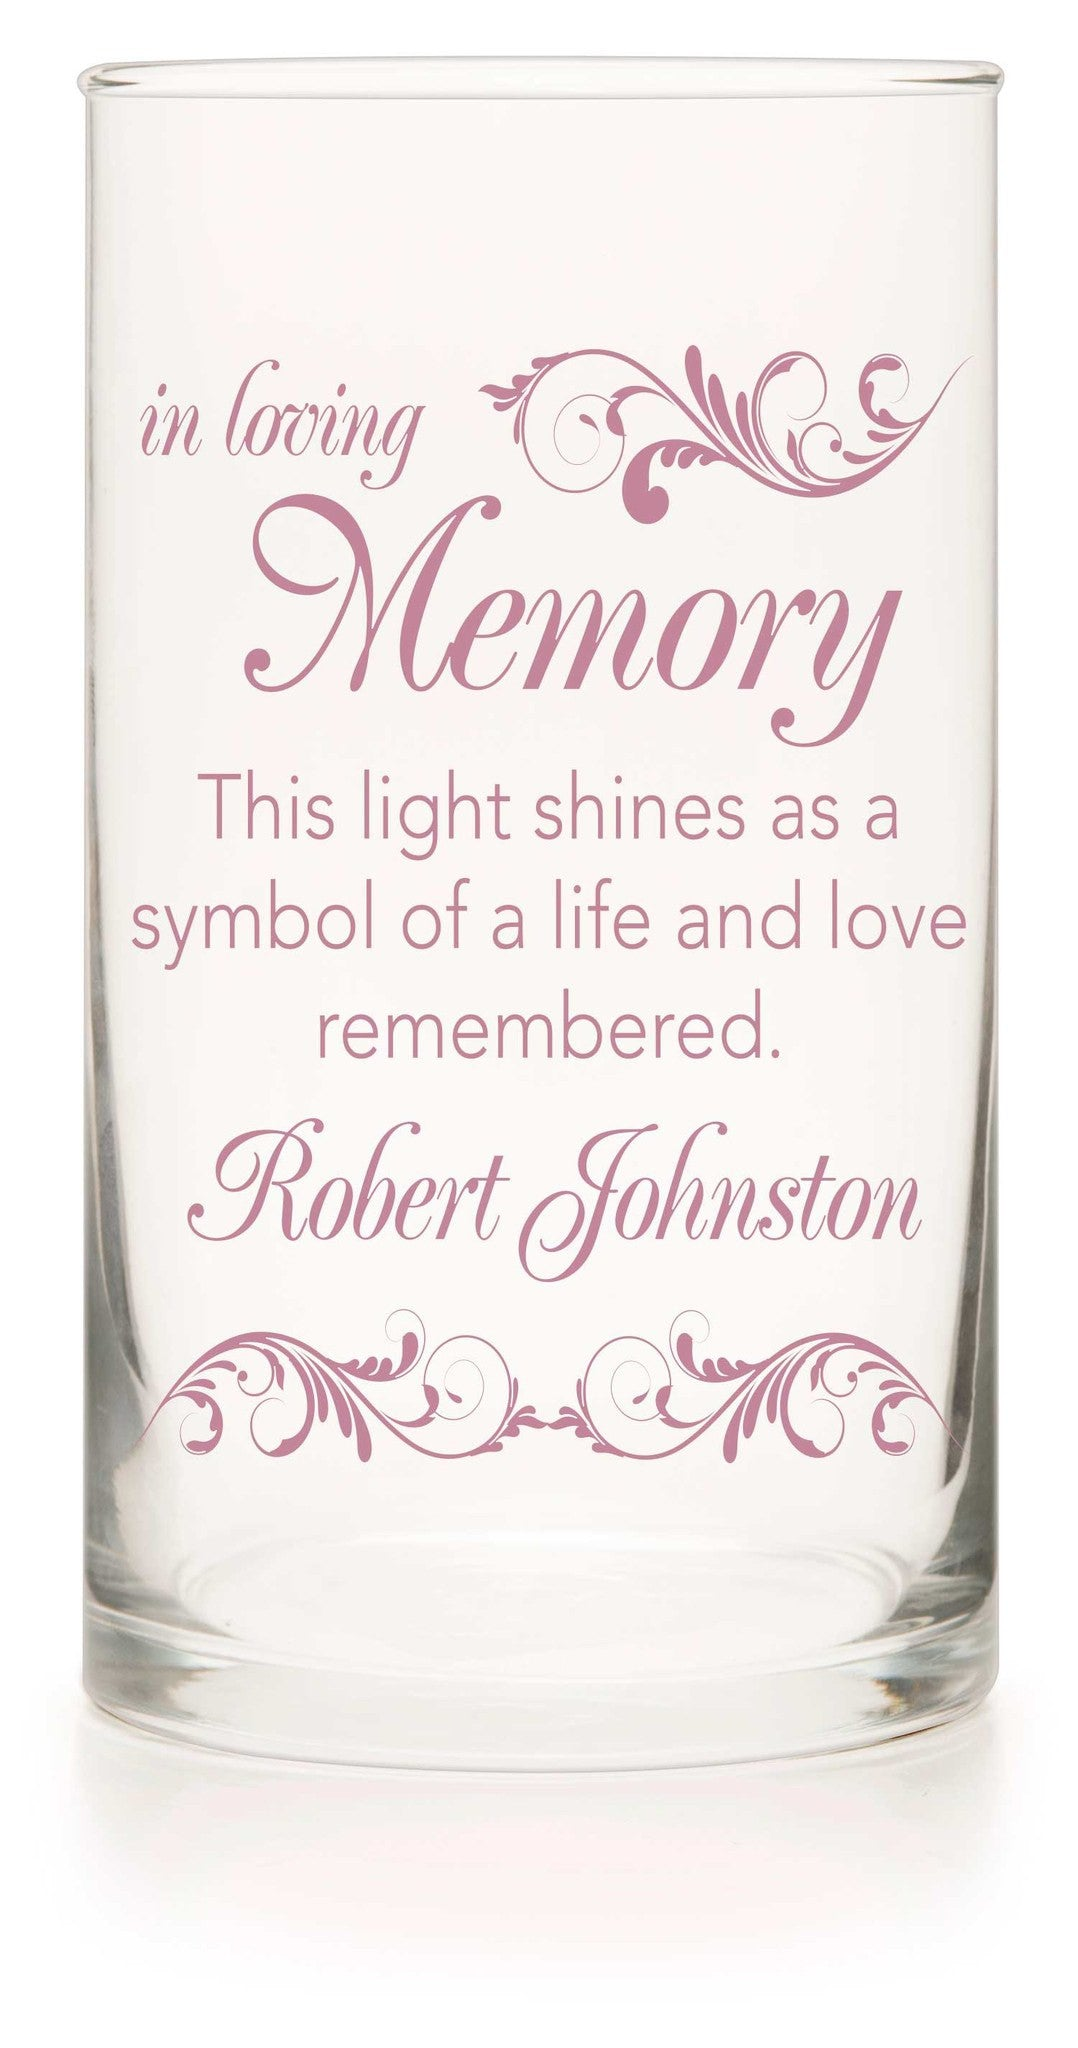 Memorial Candle - Blushing Bride Pink - Personalized Candle Holders - Wedding Candles - 7